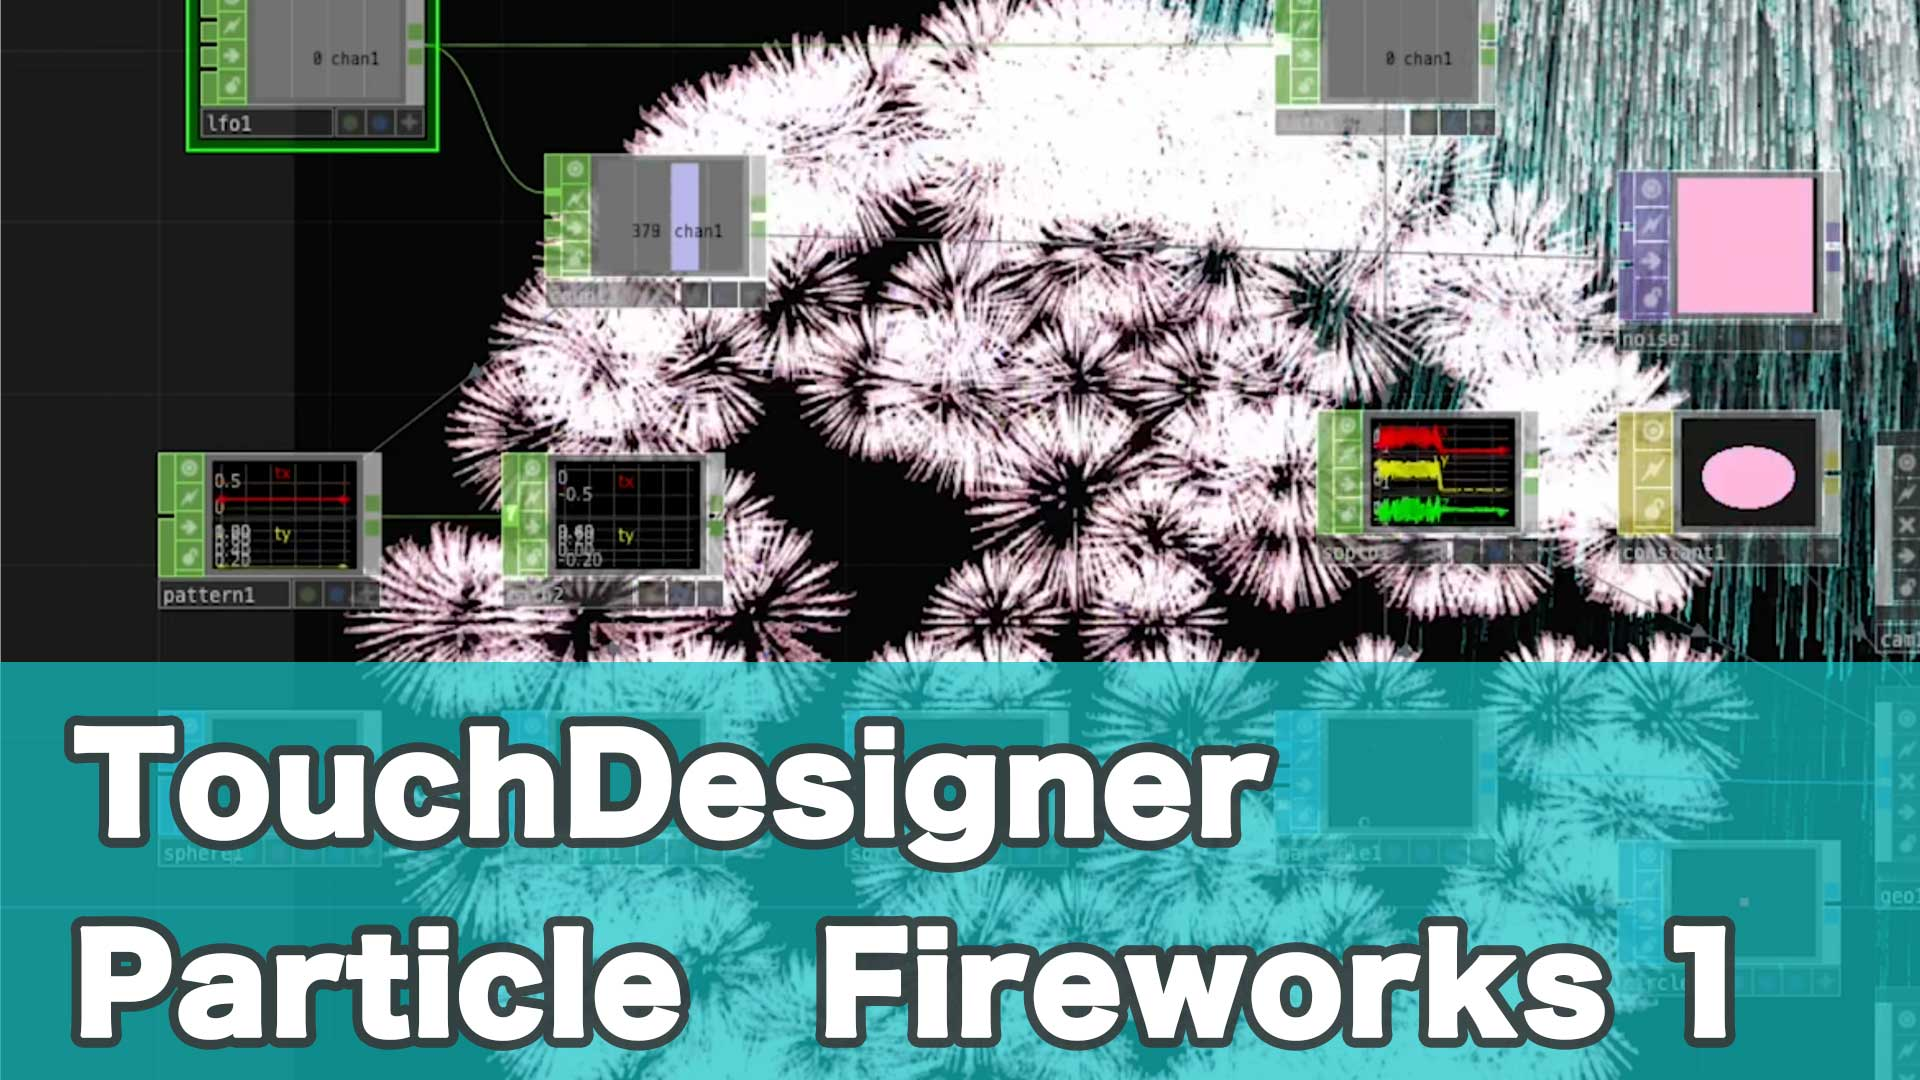 Touchdesigner Particle 花火